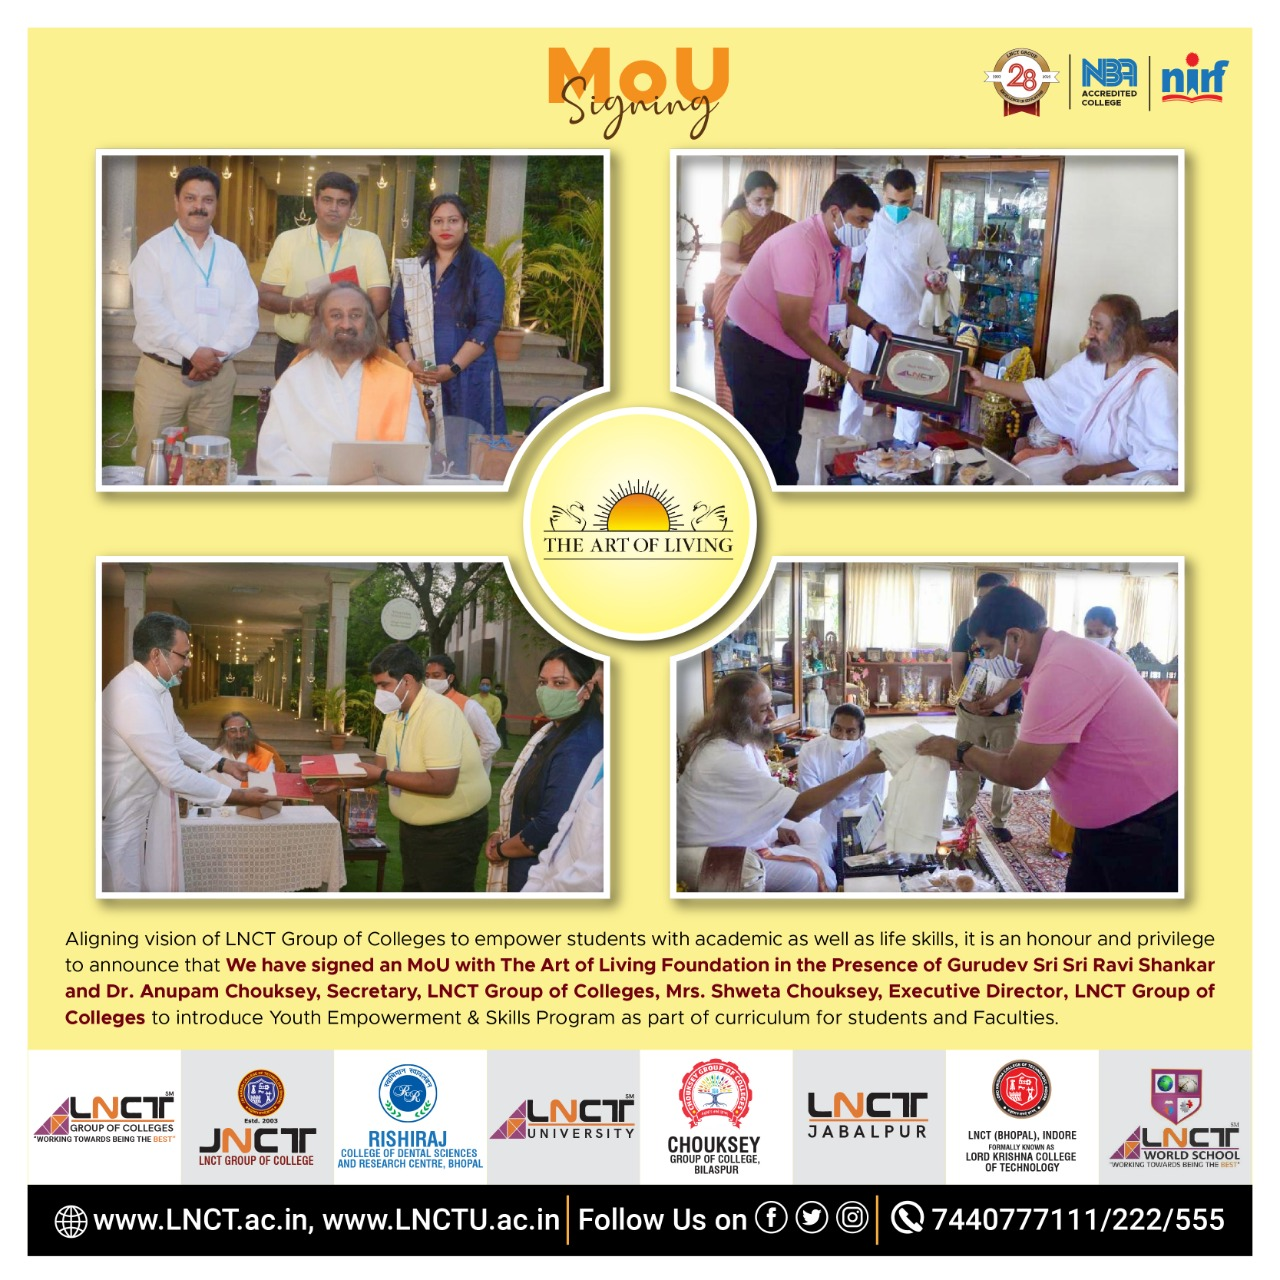 Signed an MoU with The Art of Living Foundation 8